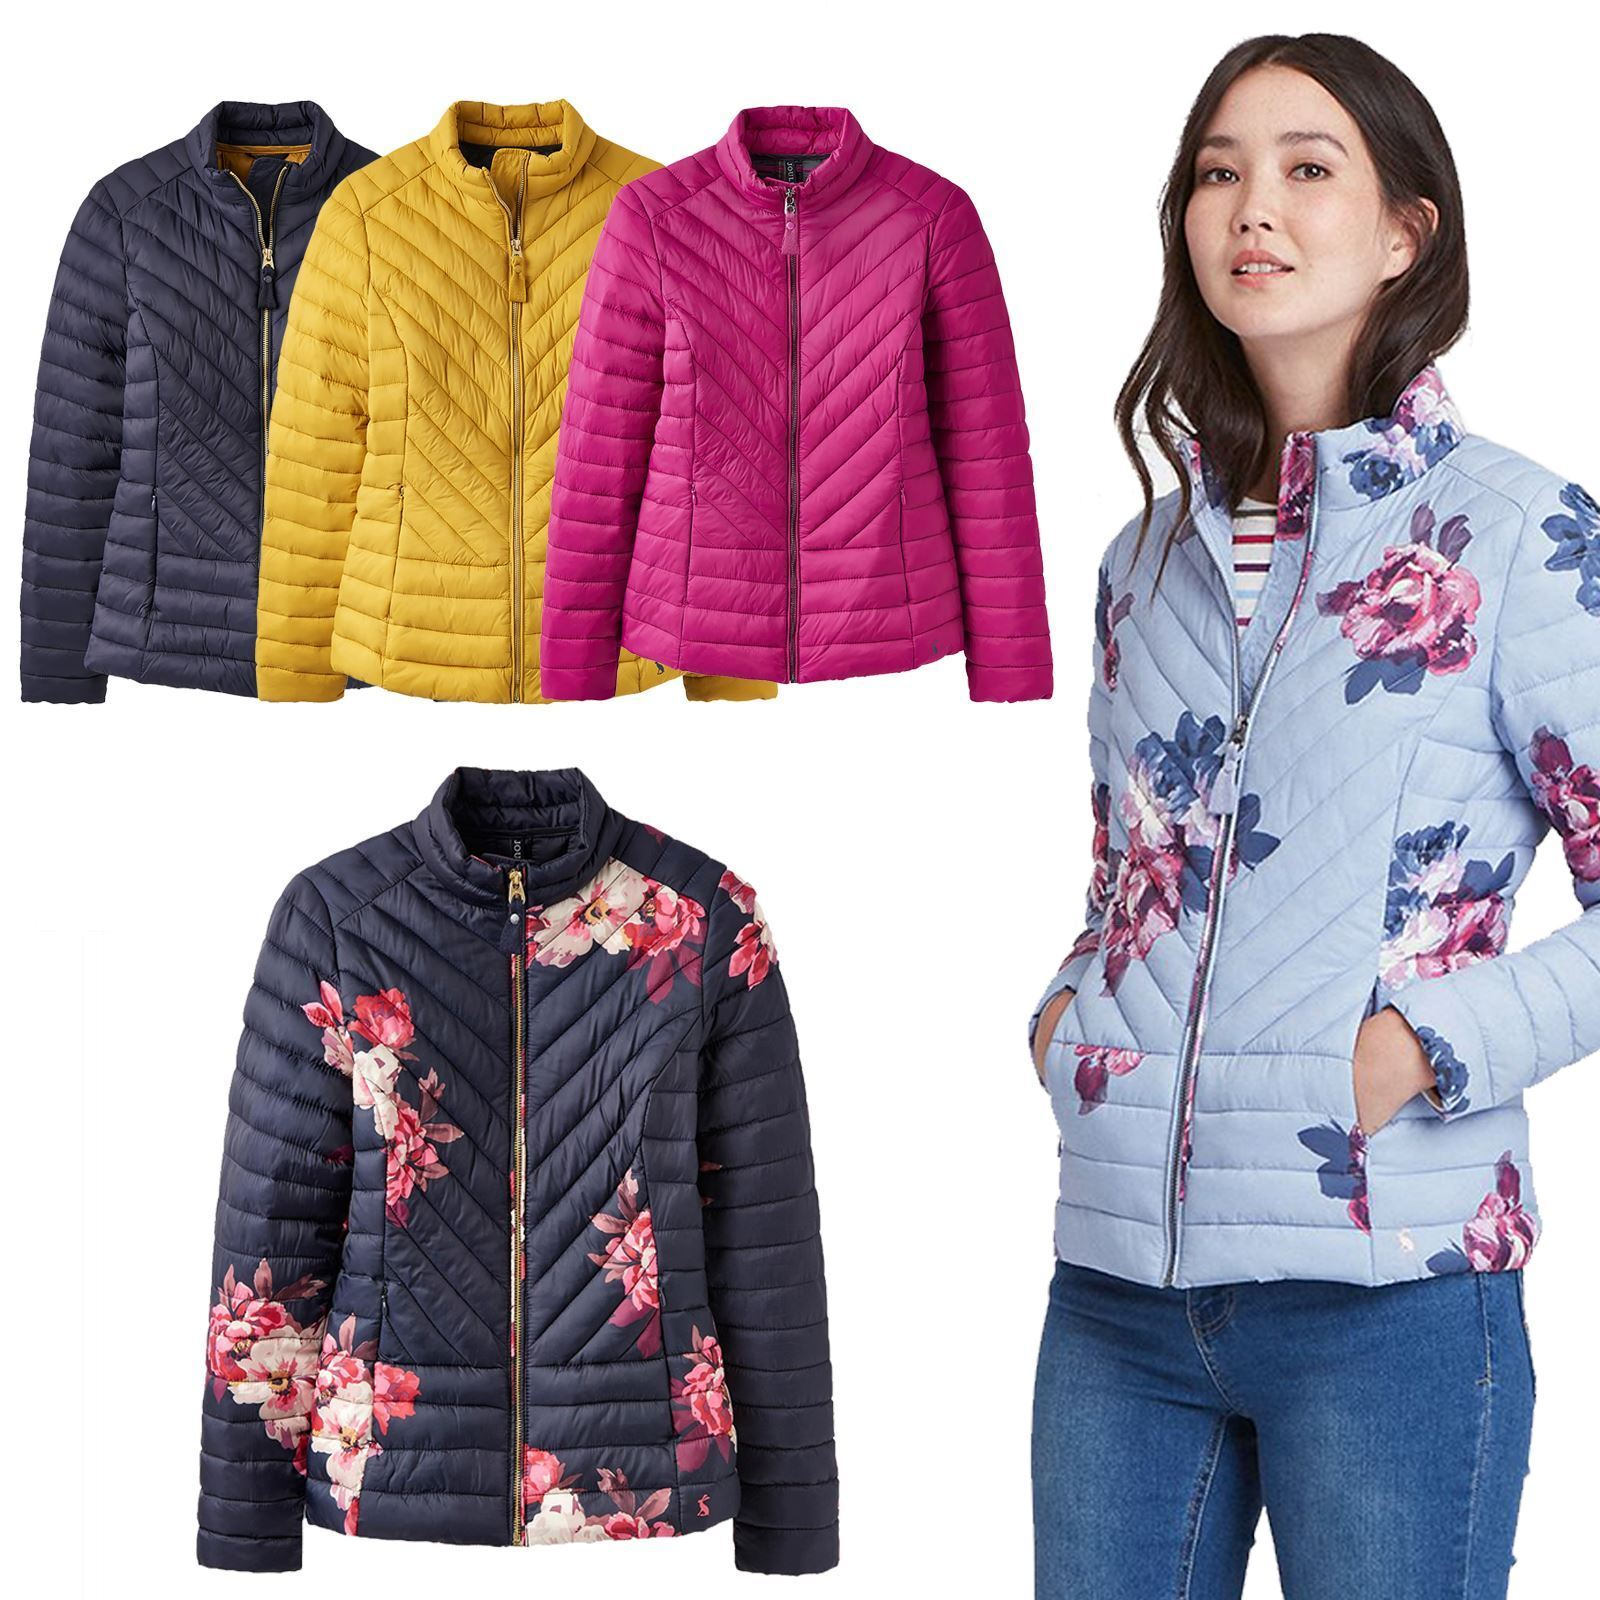 Joules Elodie Laides Equitazione Inverno Zig Zag Quilted Equitazione Giacca caldo